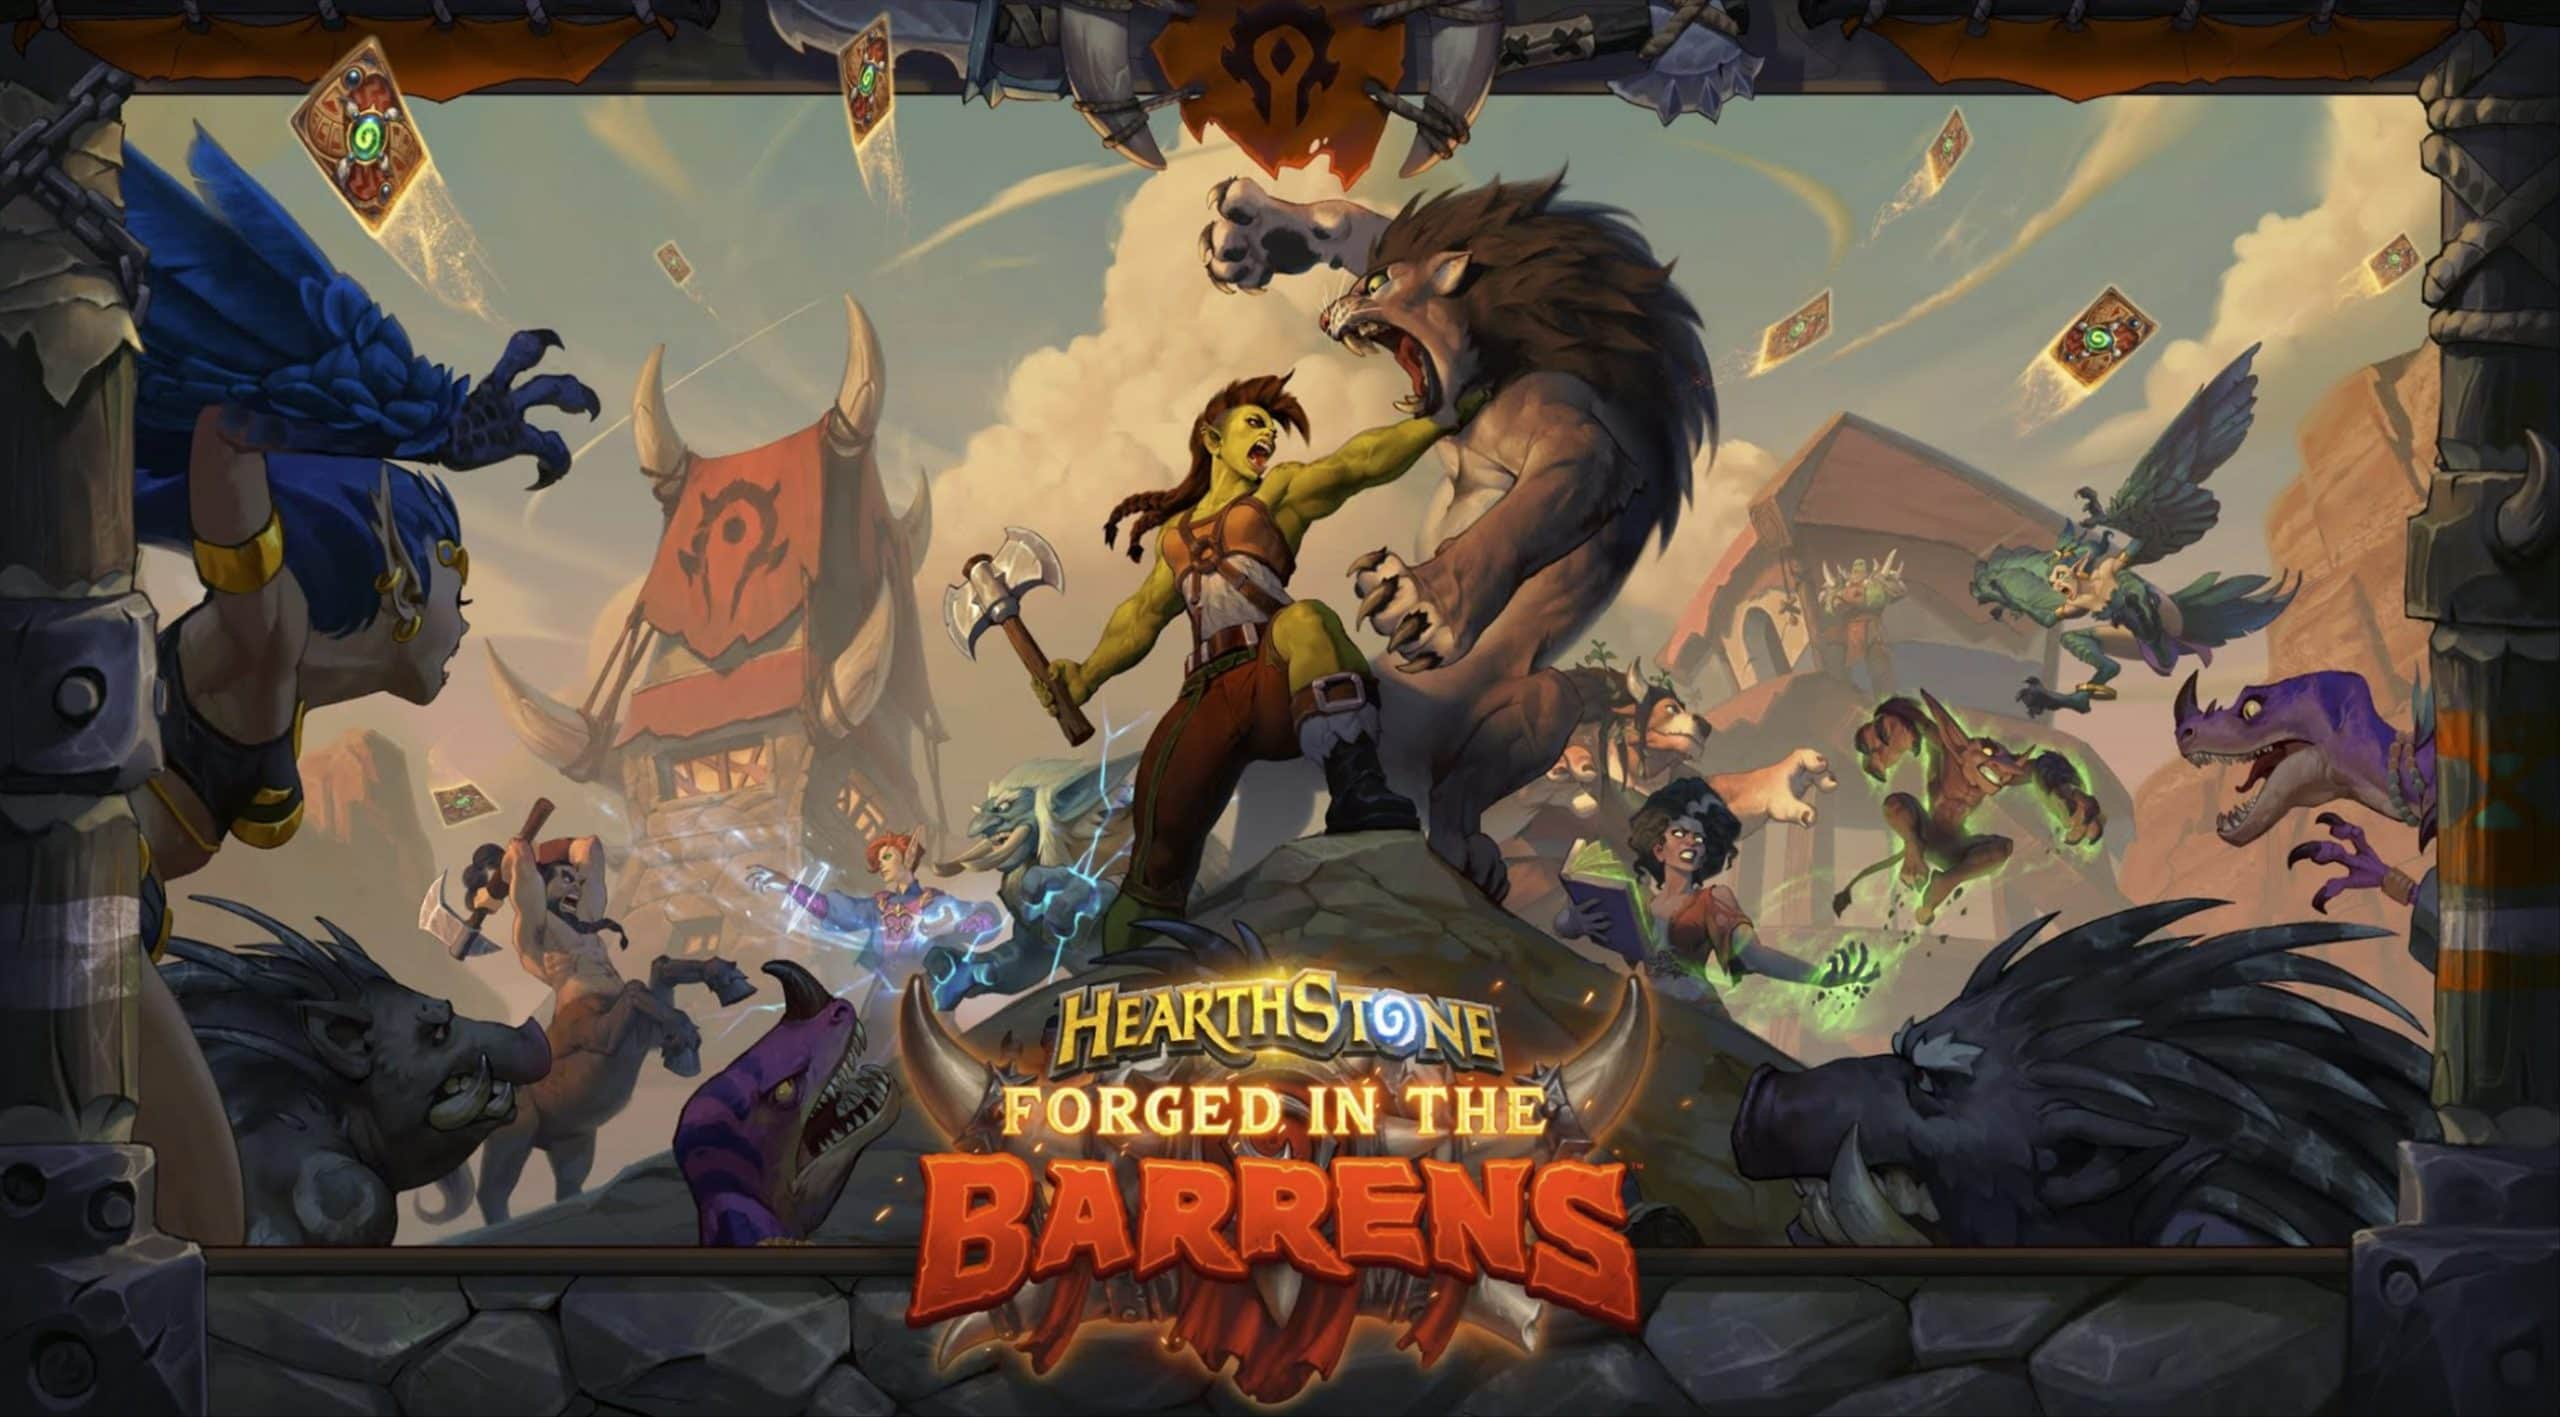 Hearthstone's latest Forged in the Barrens expansion shakes the meta greatly